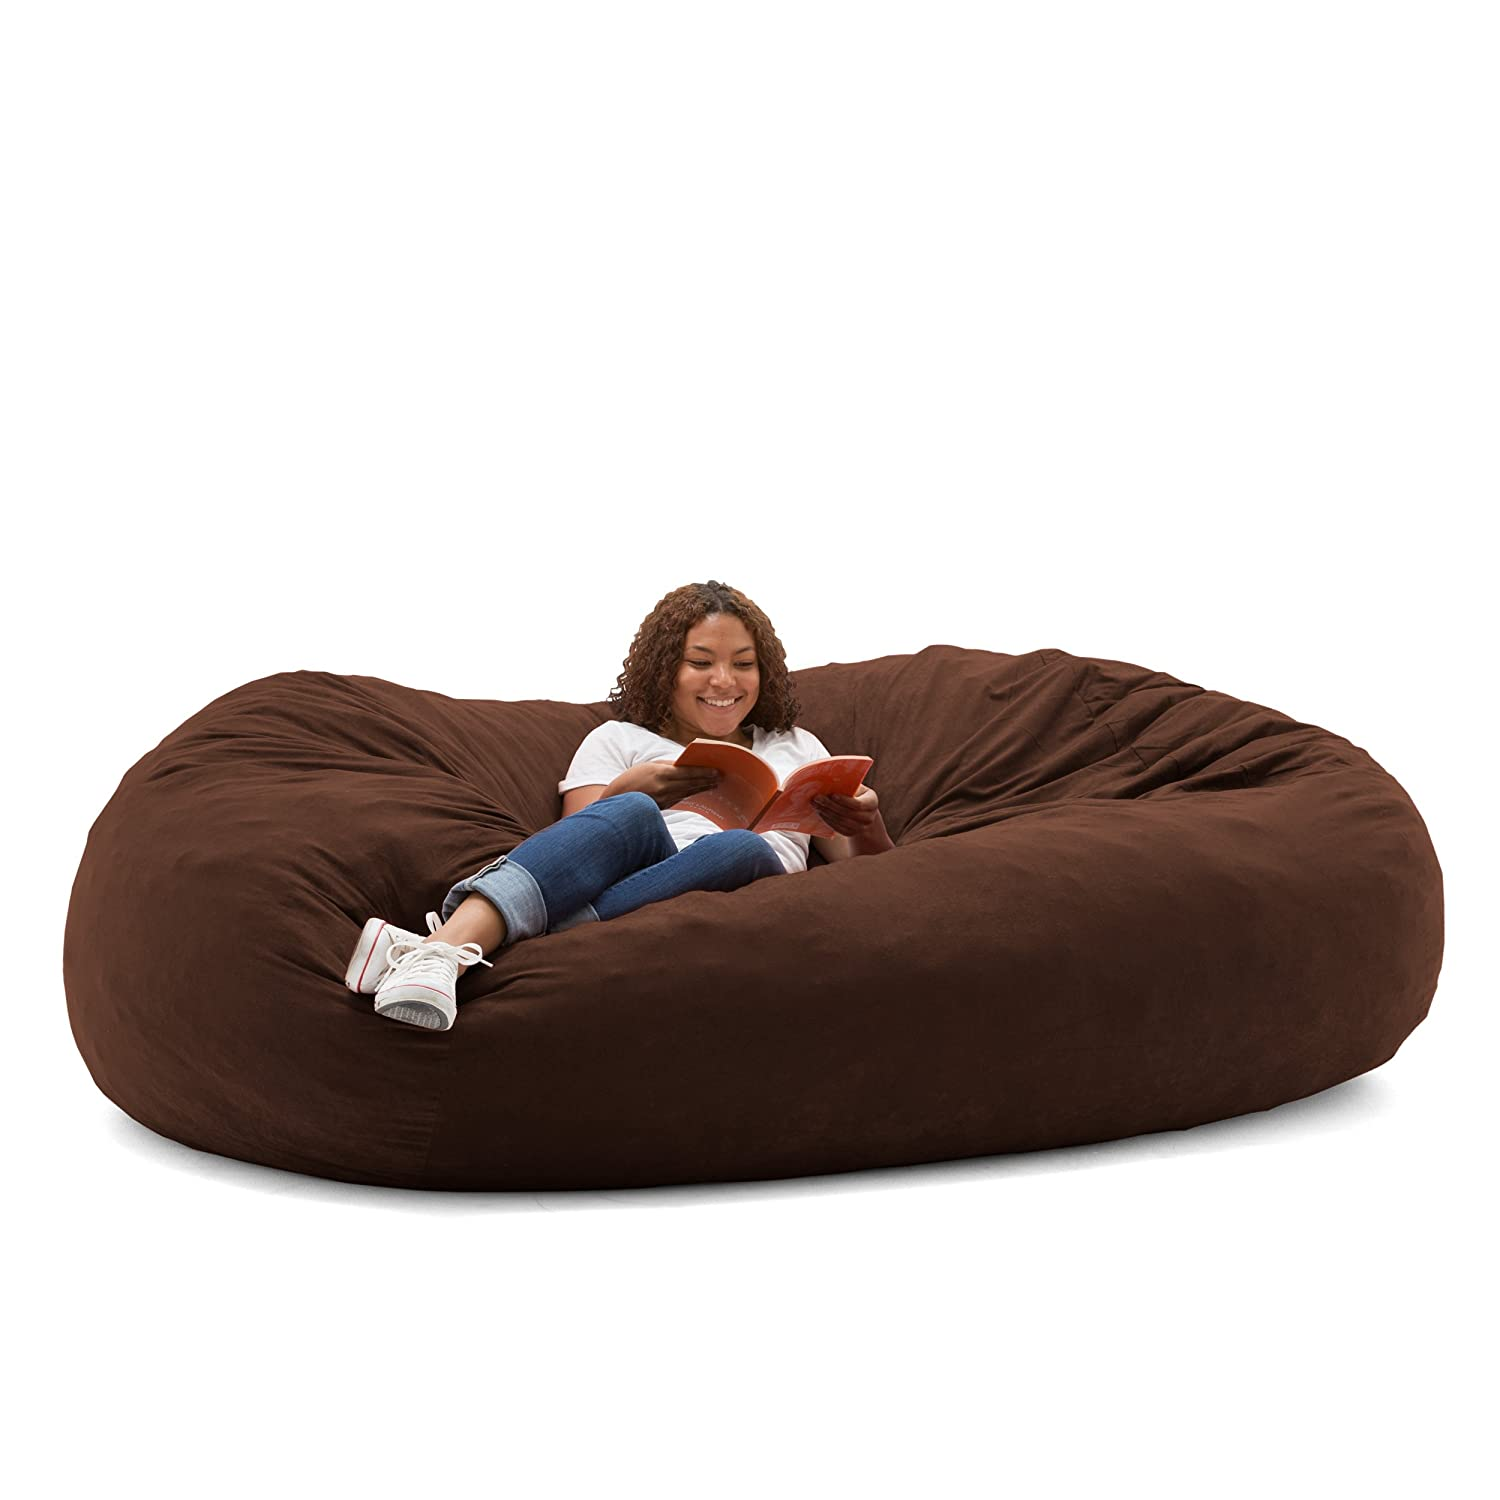 Amazon Big Joe XXL Fuf Foam Filled Bean Bag Chair fort